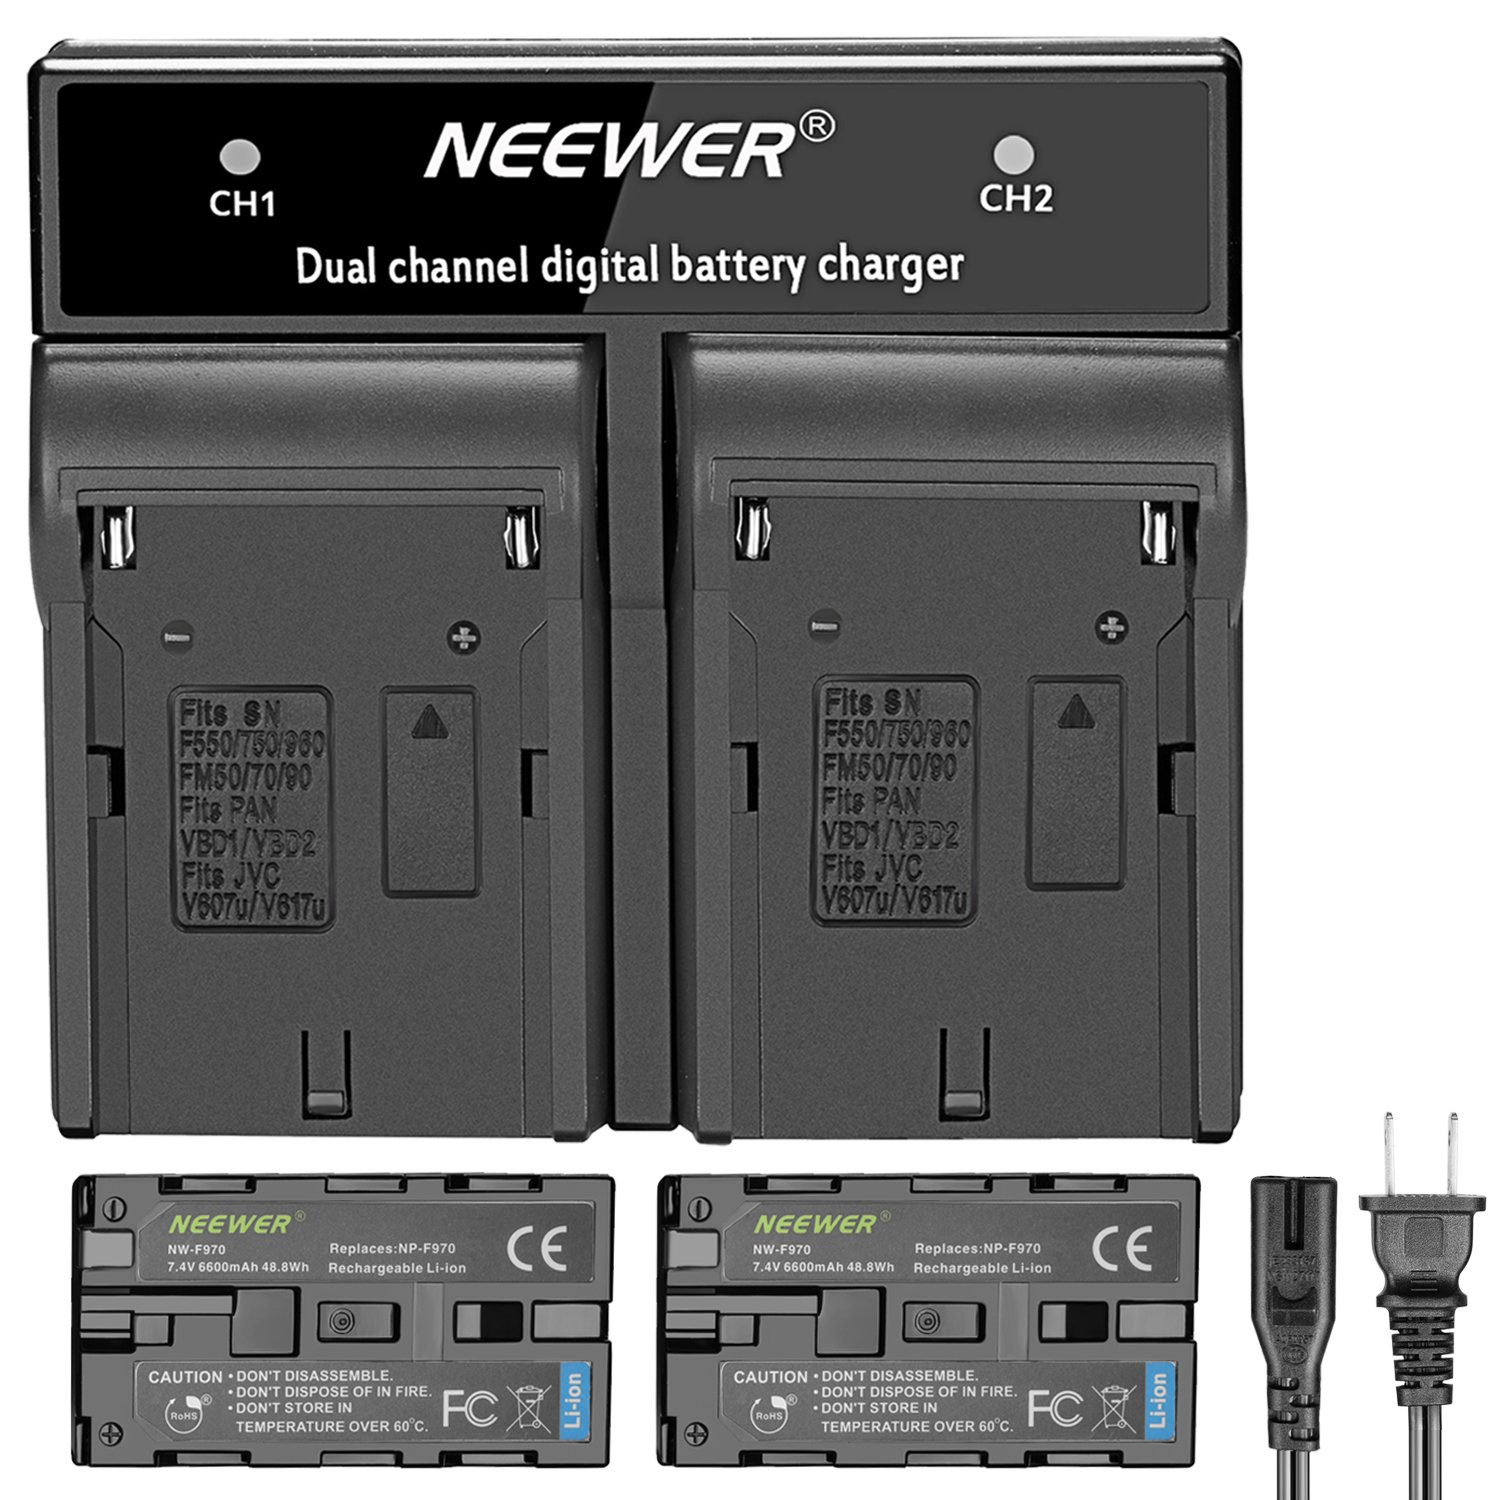 Neewer 2-Pack 6600mAh Replacement Battery with Charger(US Plug)forSony NP-F970 NP-F960 NP-F975 NP-F570 NP- F750 NP-F770, Suitable for Neewer CN160 NW759 74K 760, FW759 74K 760 LED Video Light, Monitor by Neewer